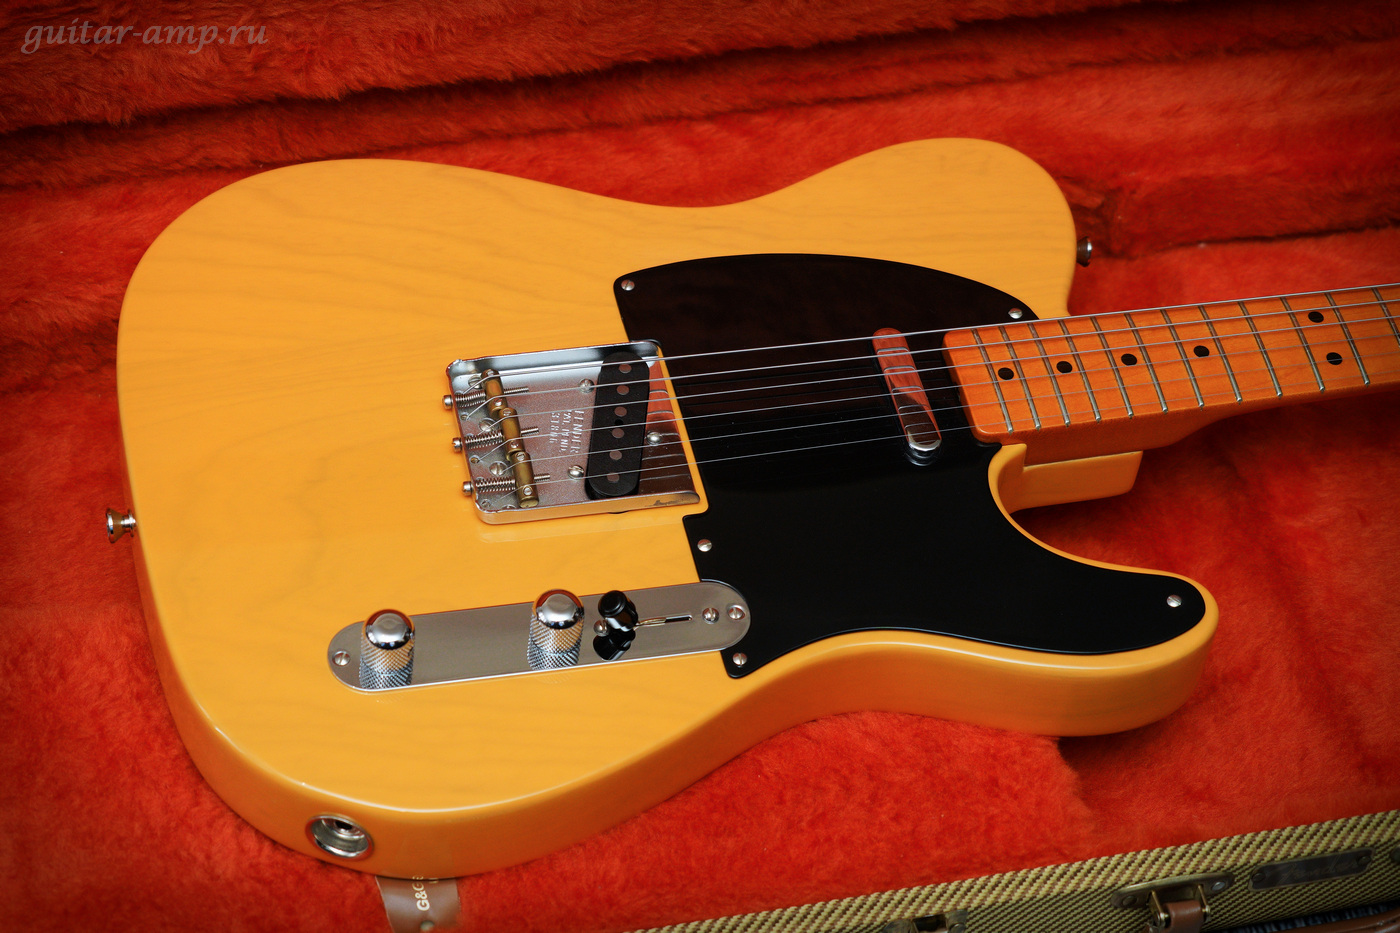 Fender American Vintage Telecaster 1952 Reissue Butterscotch Blonde All Original 1998 16_garx1400.jpg